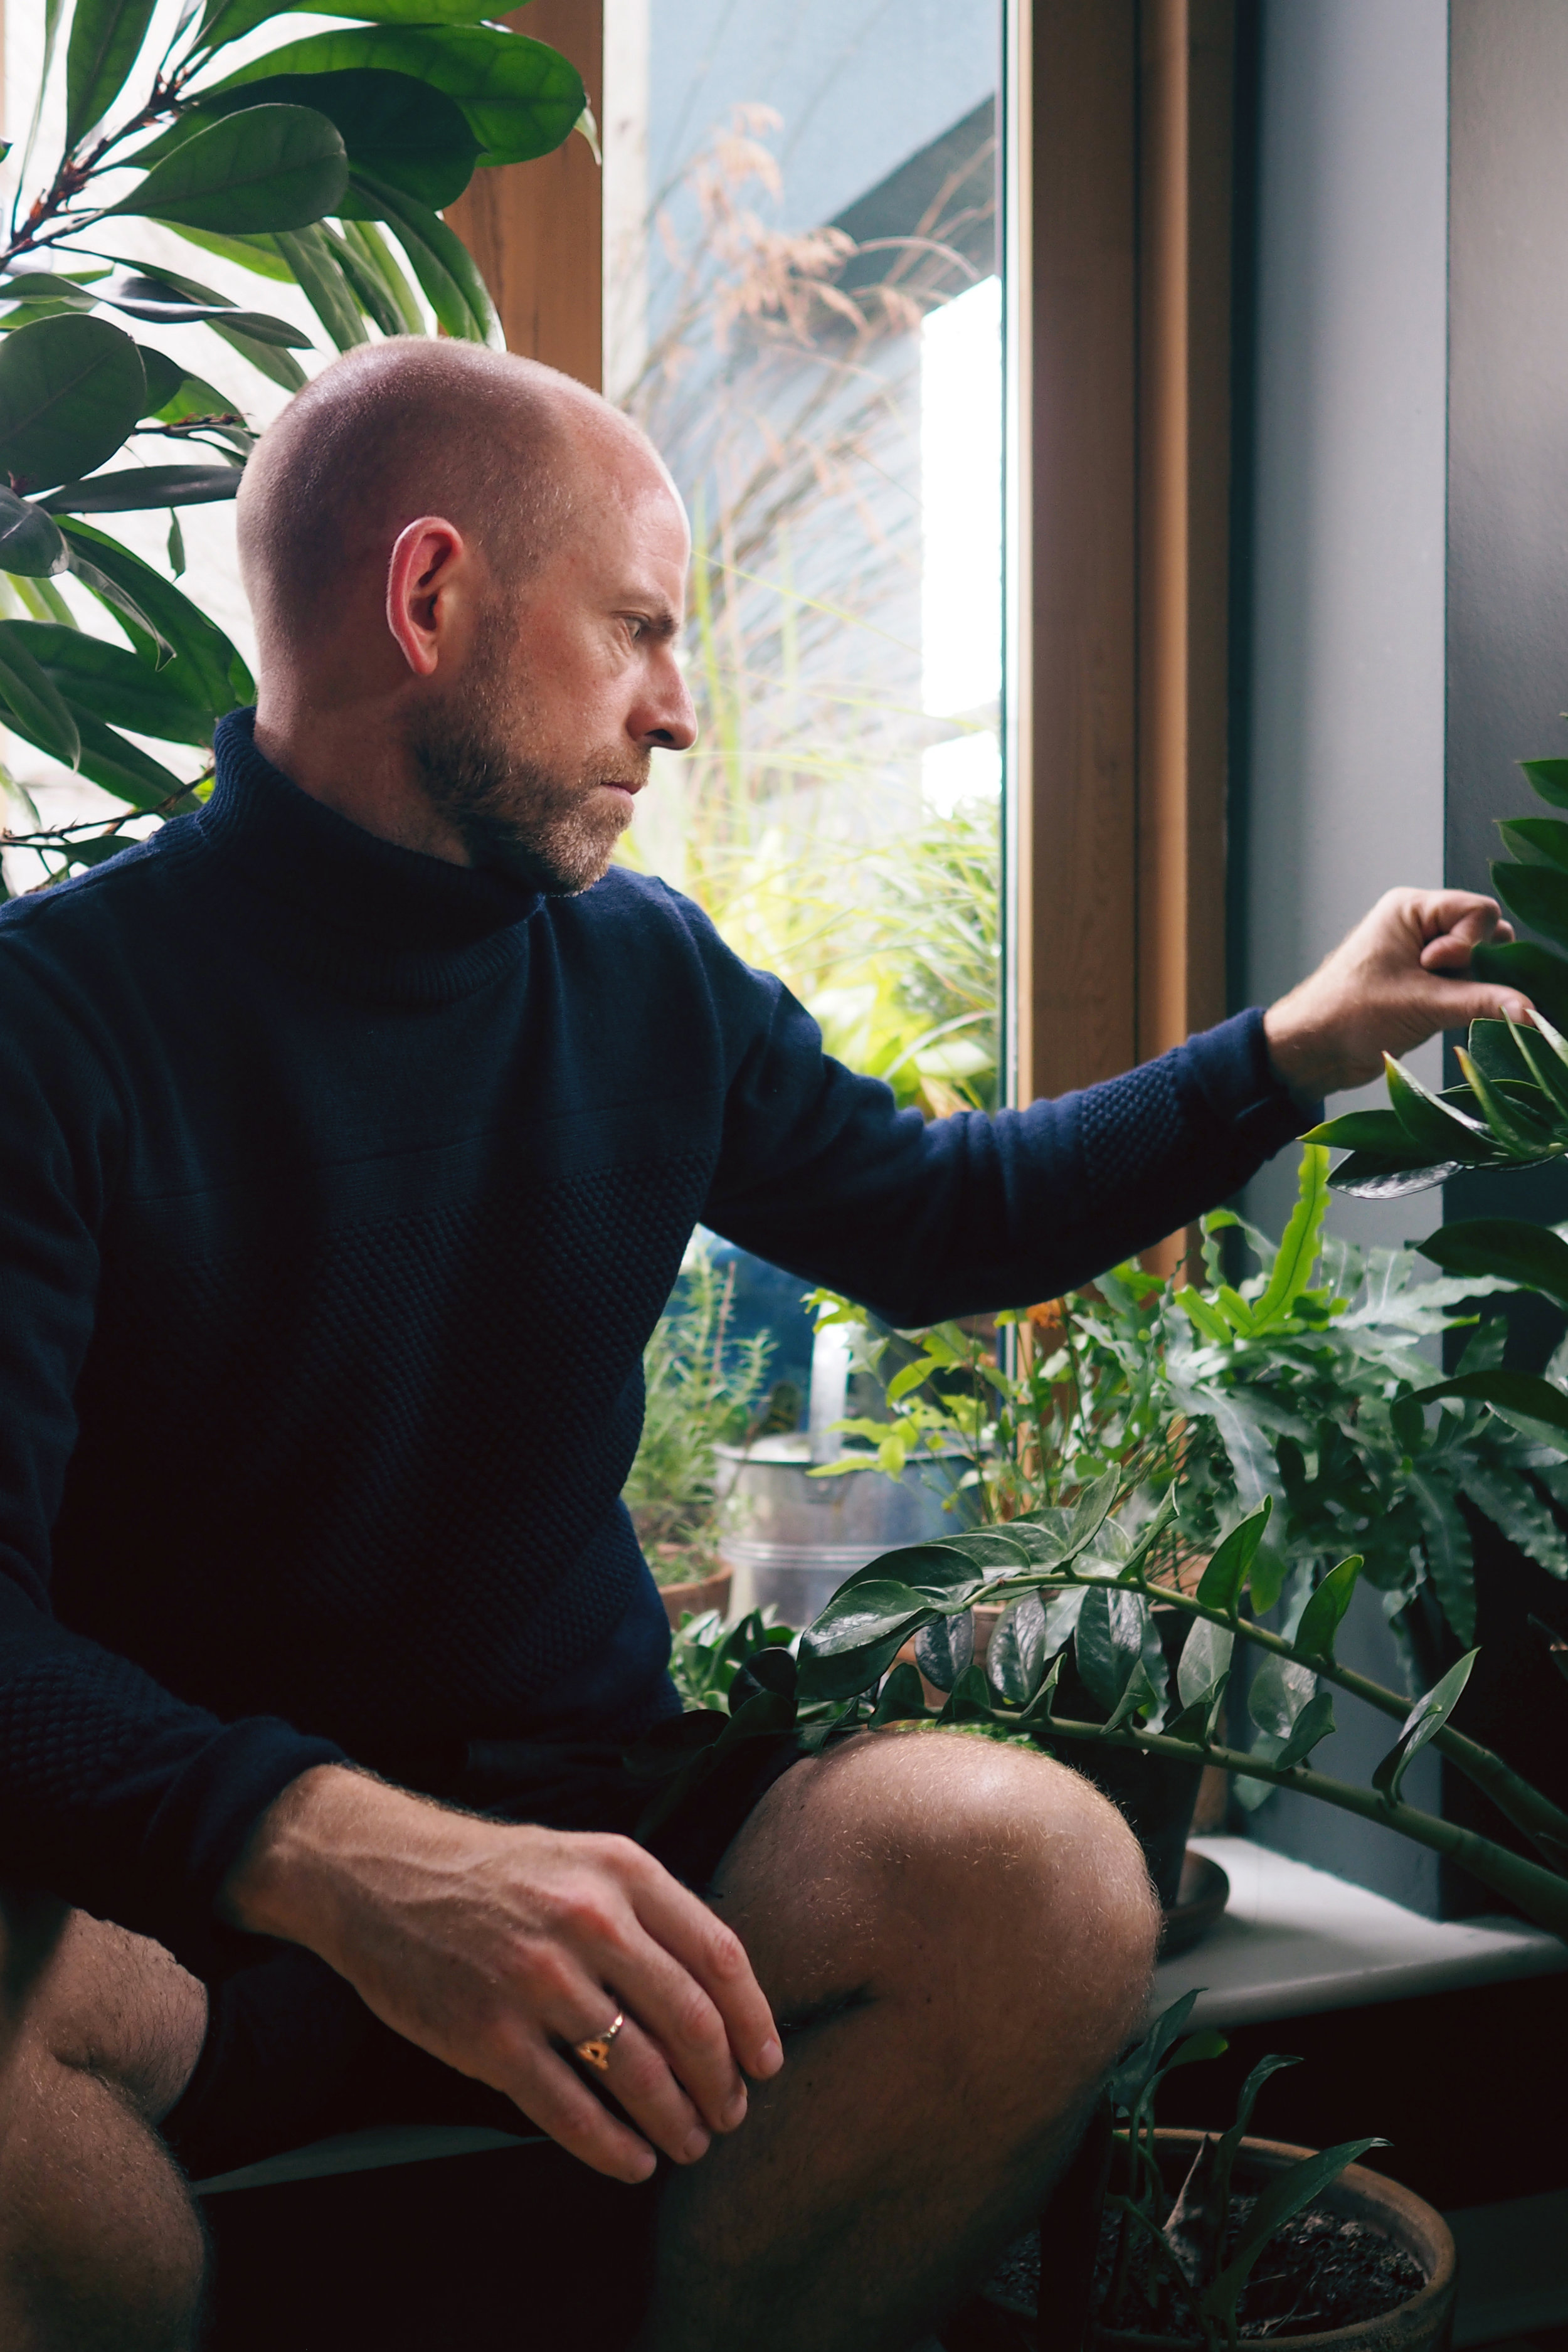 Next, the wool roll neck is by Danish label   Norse Projects  . The denim shorts and Claddagh ring are Mark's own.